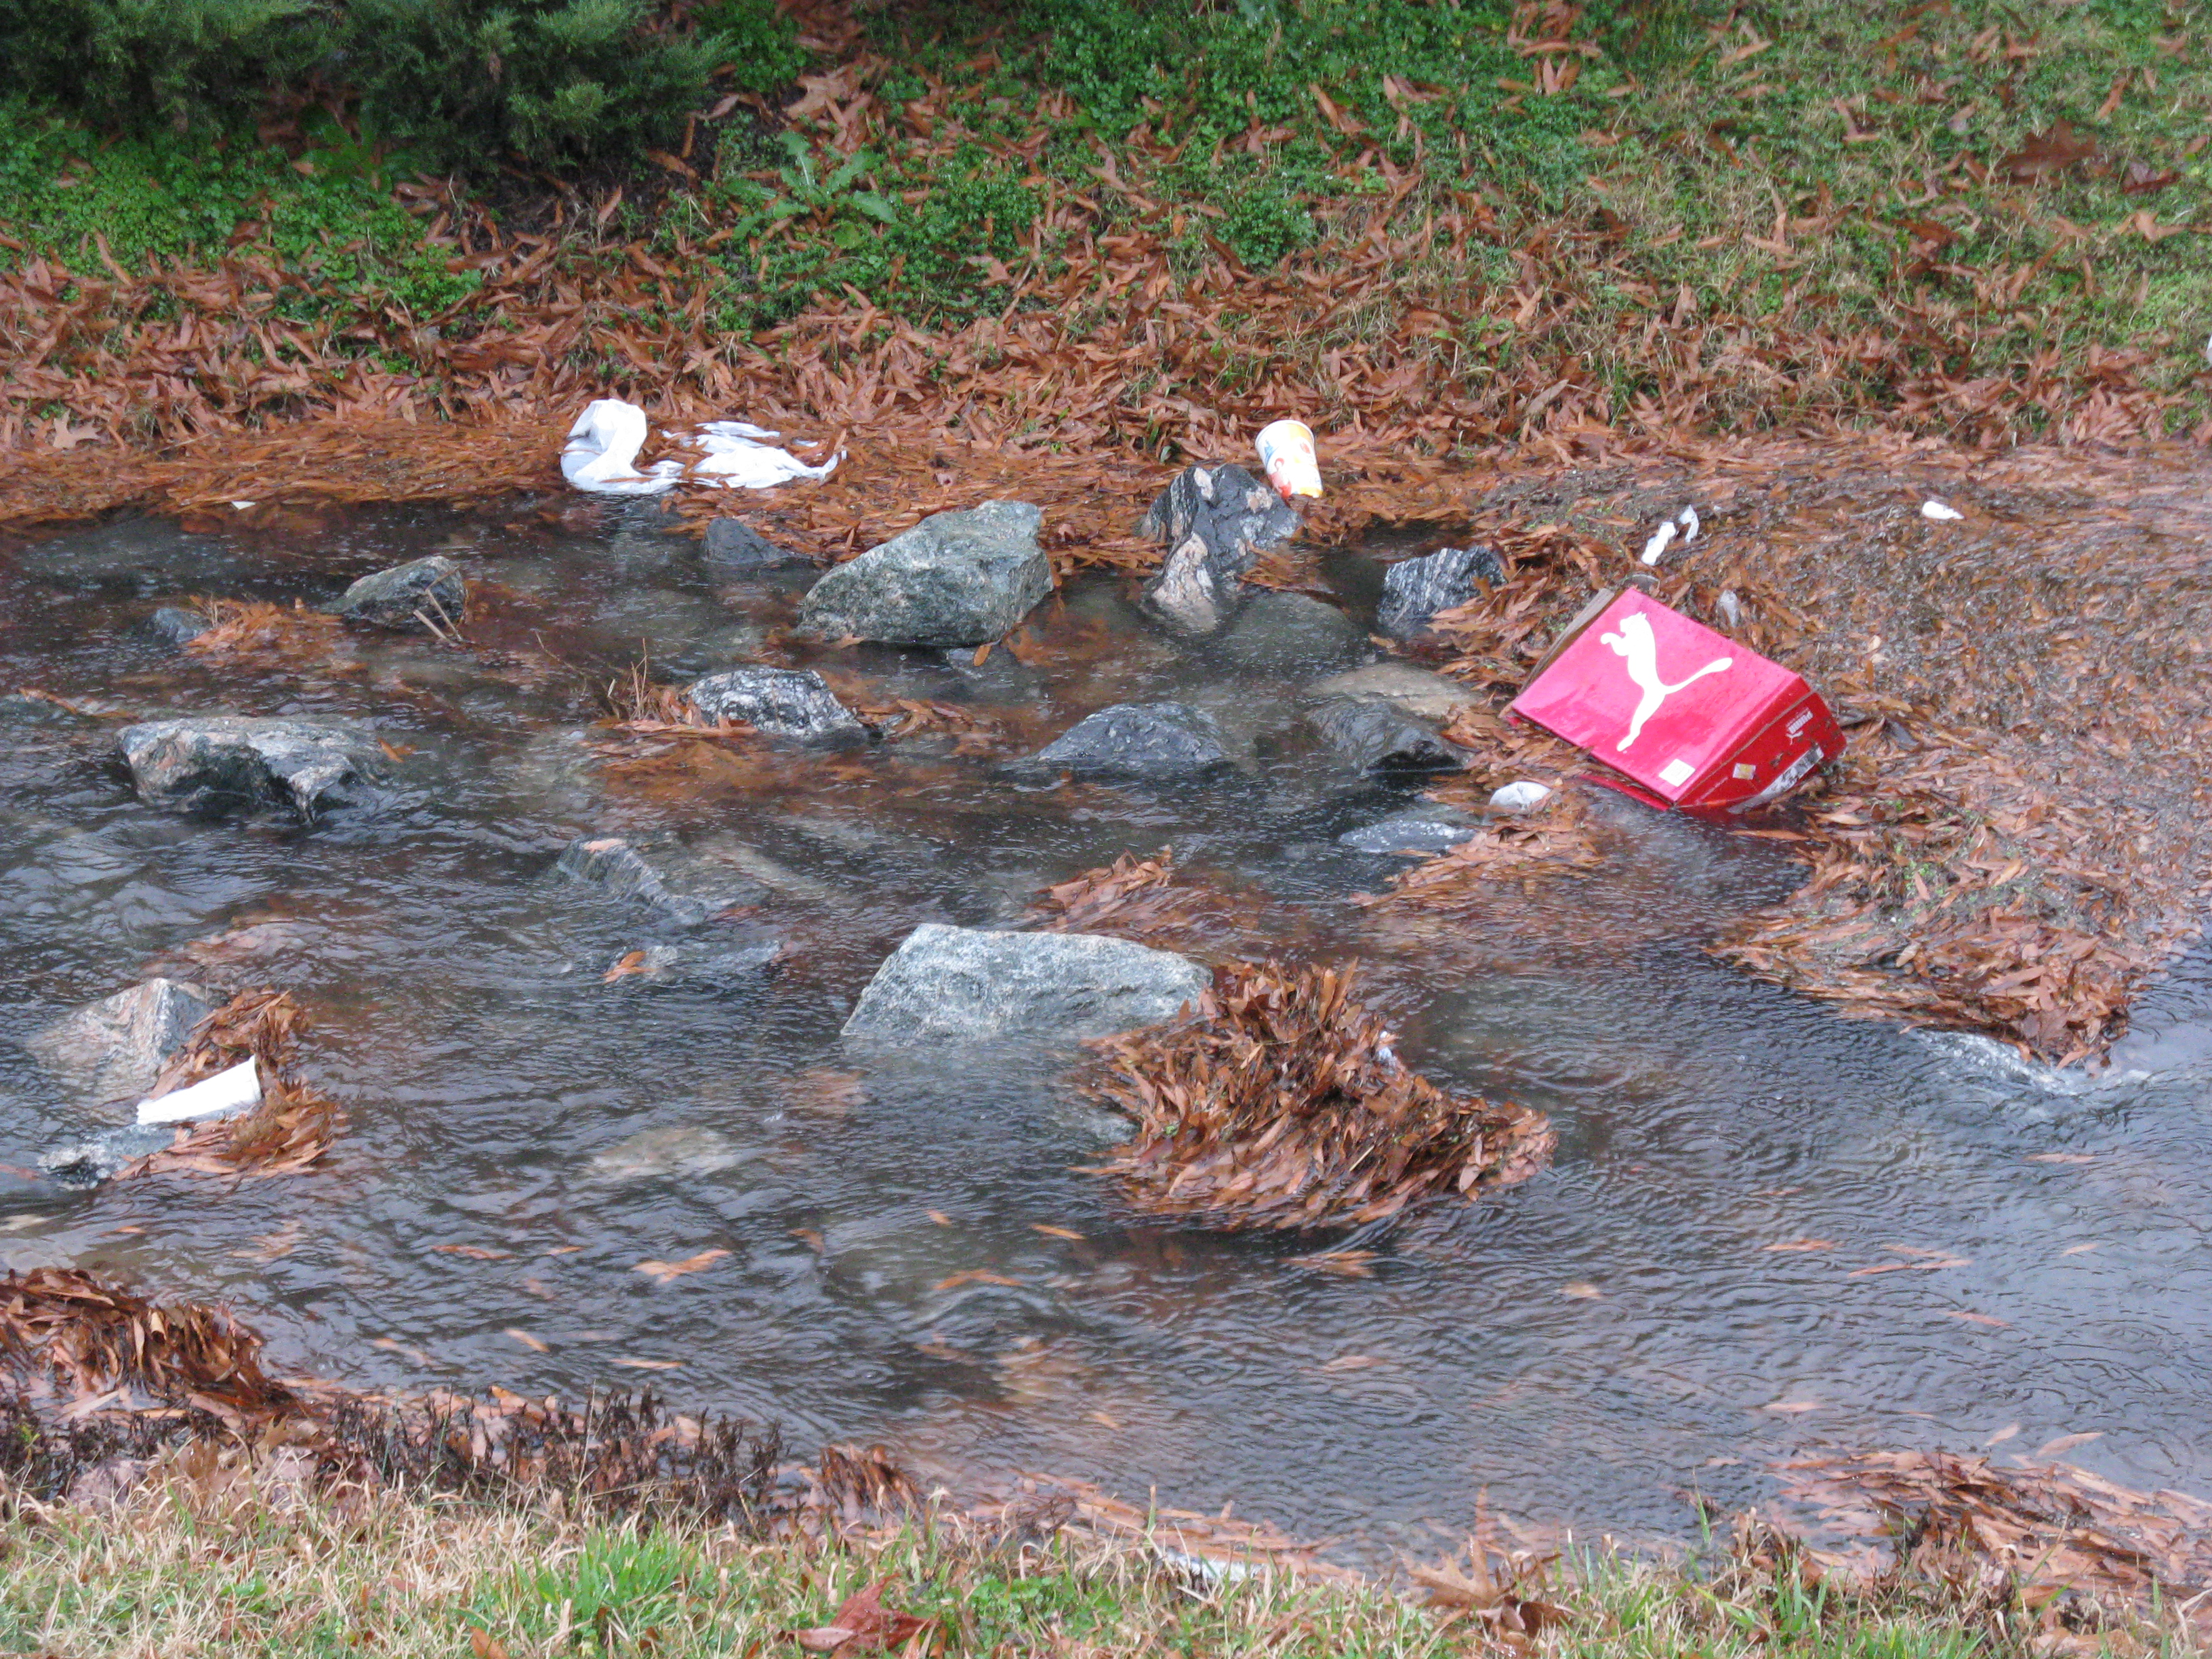 Litter in stormwater